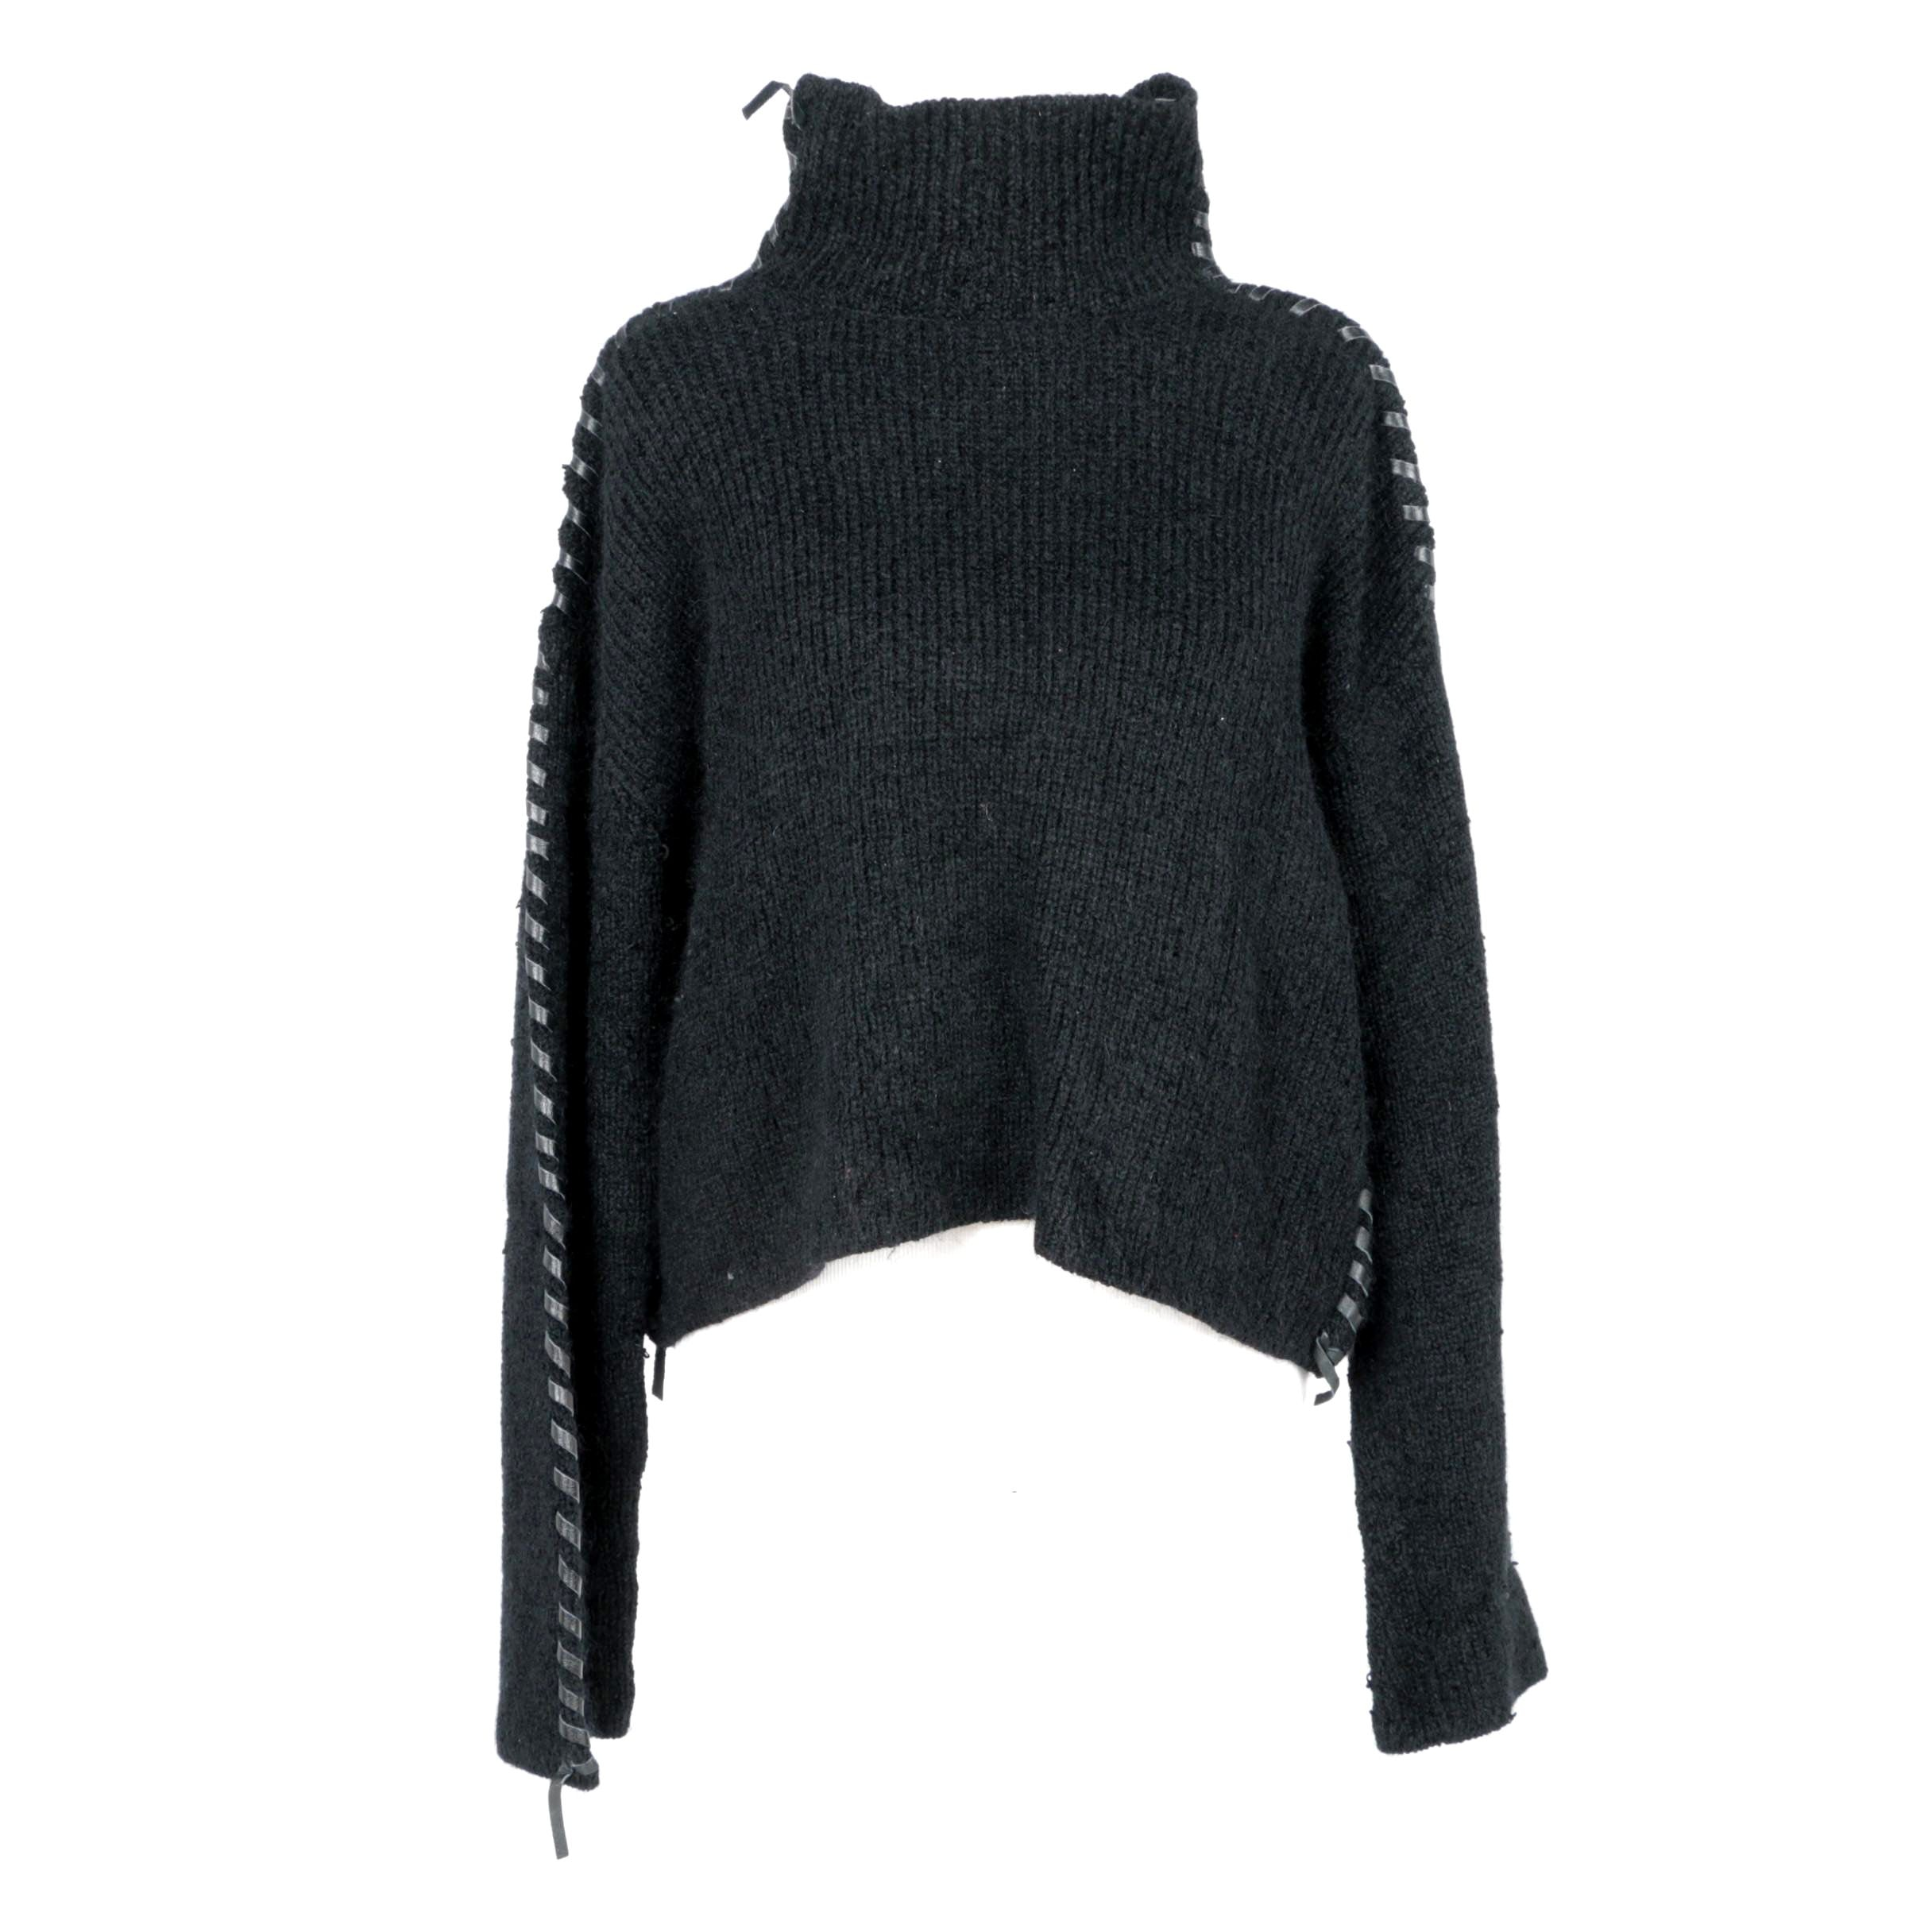 Issey Miyake Leather Embellished Sweater